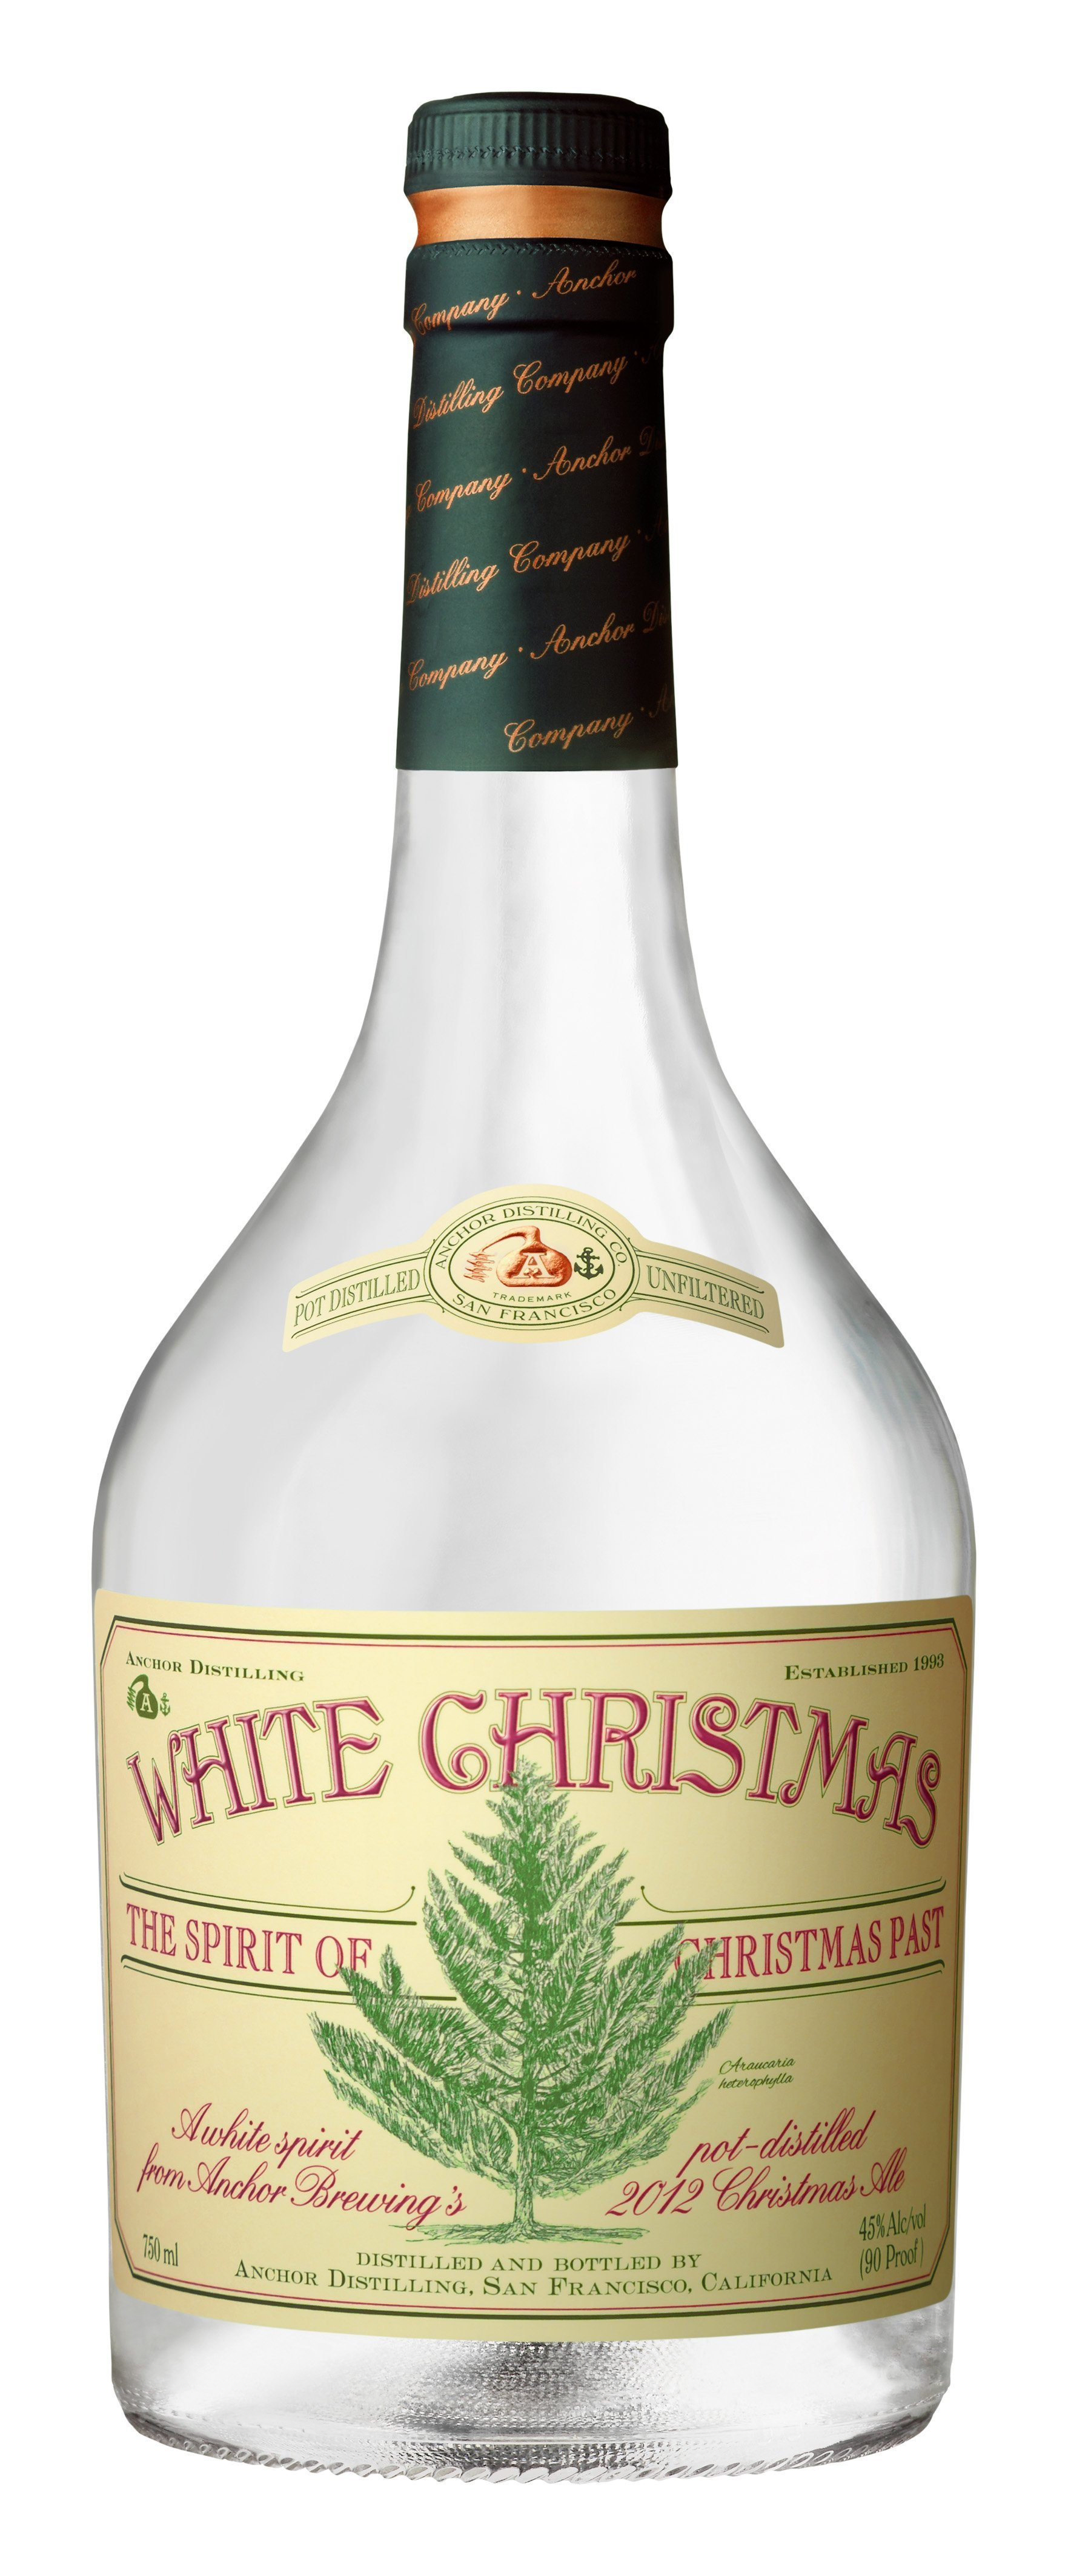 Anchor Steam Christmas Ale.Review Anchor Distilling White Christmas White Whiskey 2013